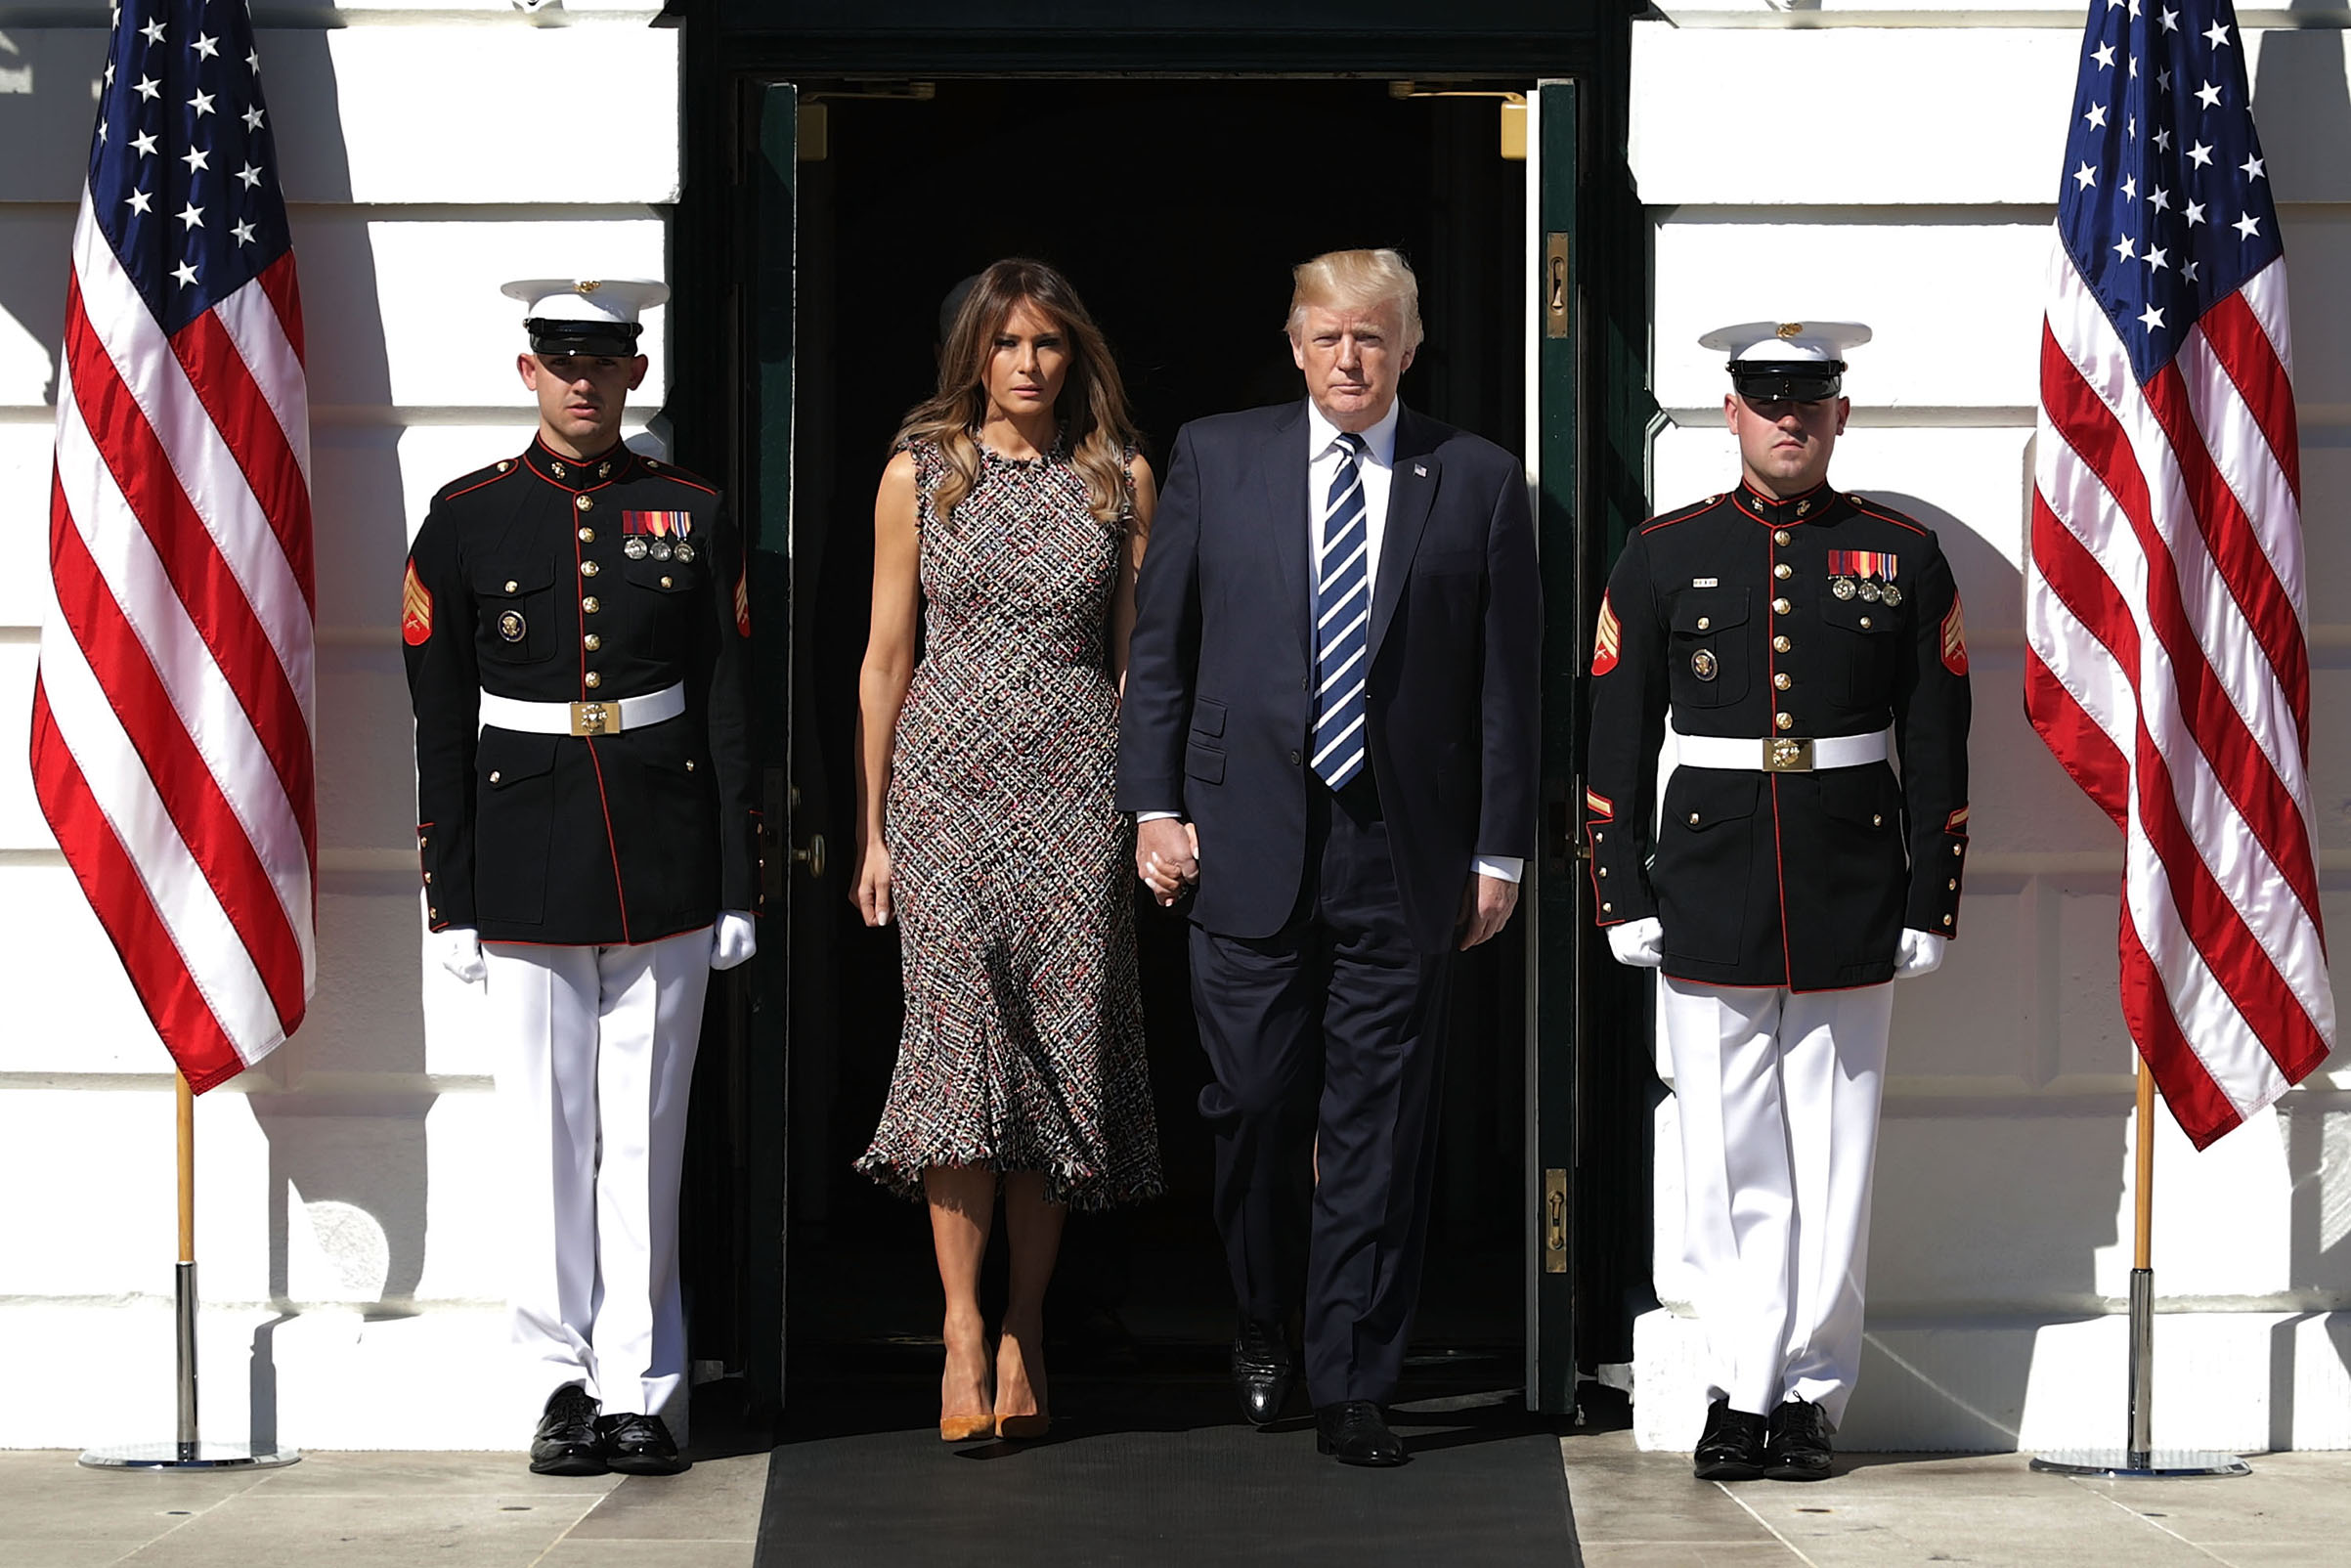 President Donald Trump (R) and first lady Melania Trump wearing a Alexander McQueen tweed midi dress, walk out of the White House before observing a moment of silence on the South Lawn Oct. 2, 2017 in Washington, D.C.